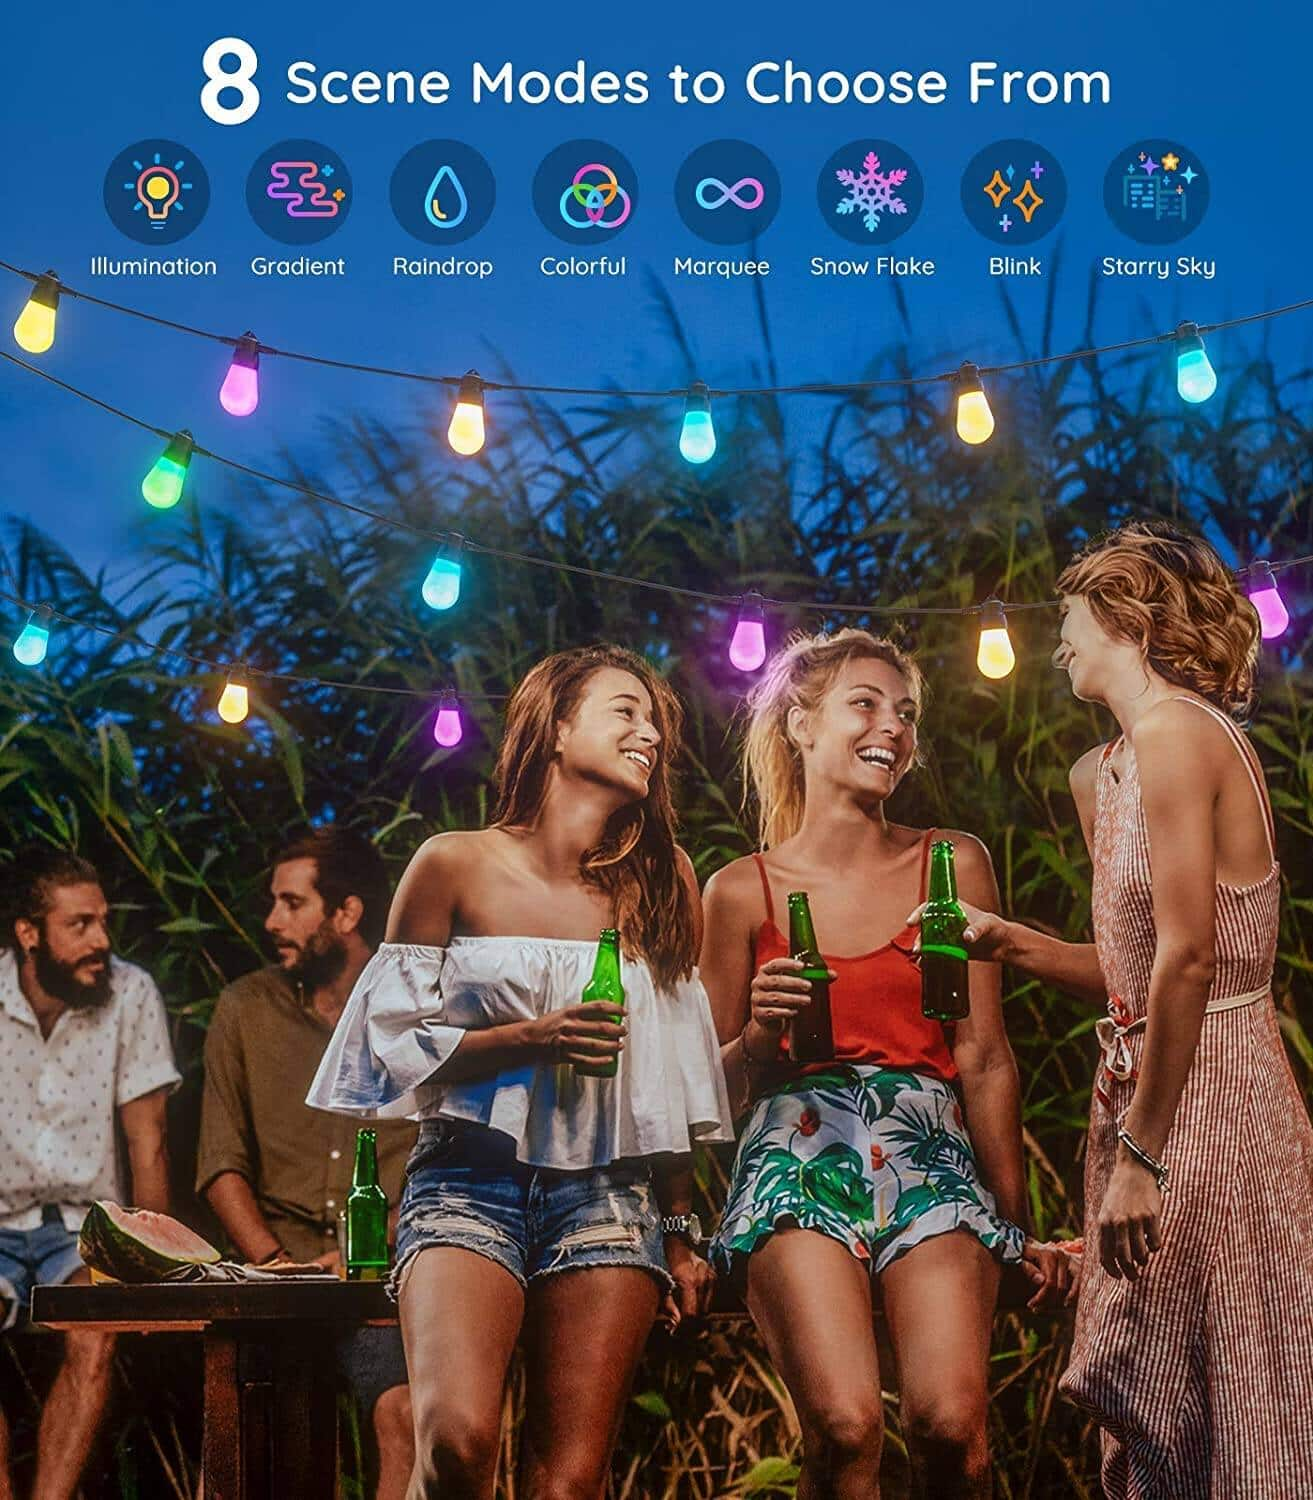 Govee Bluetooth 48ft RGBW Outdoor String Lights, Patio Lights Dimmable App Control, IP65 Waterproof,15 LED Bulbs with DIY and 8 Scene Modes- $39.89 + FS